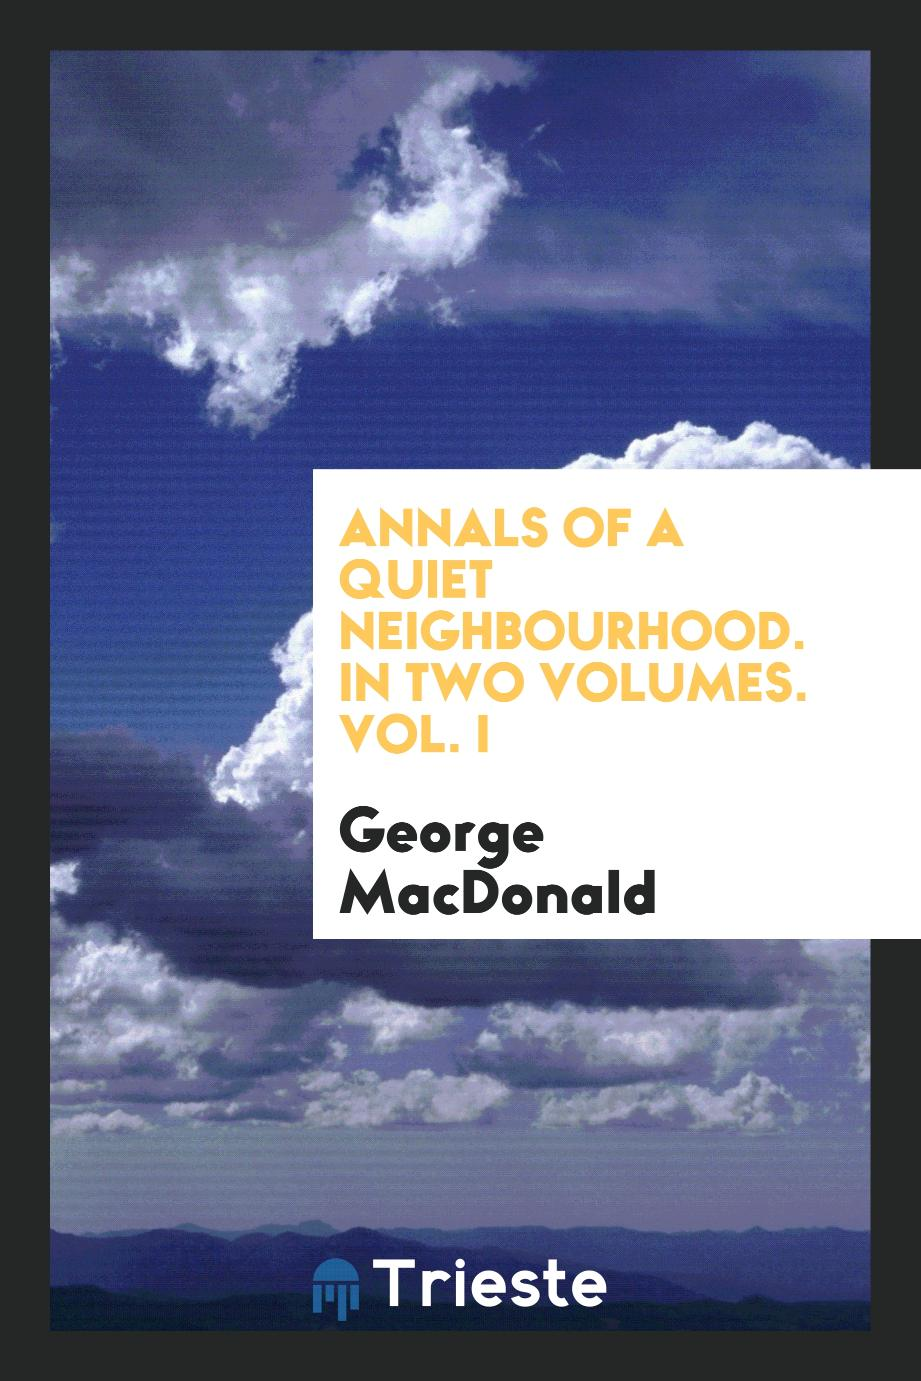 Annals of a Quiet Neighbourhood. In Two Volumes. Vol. I